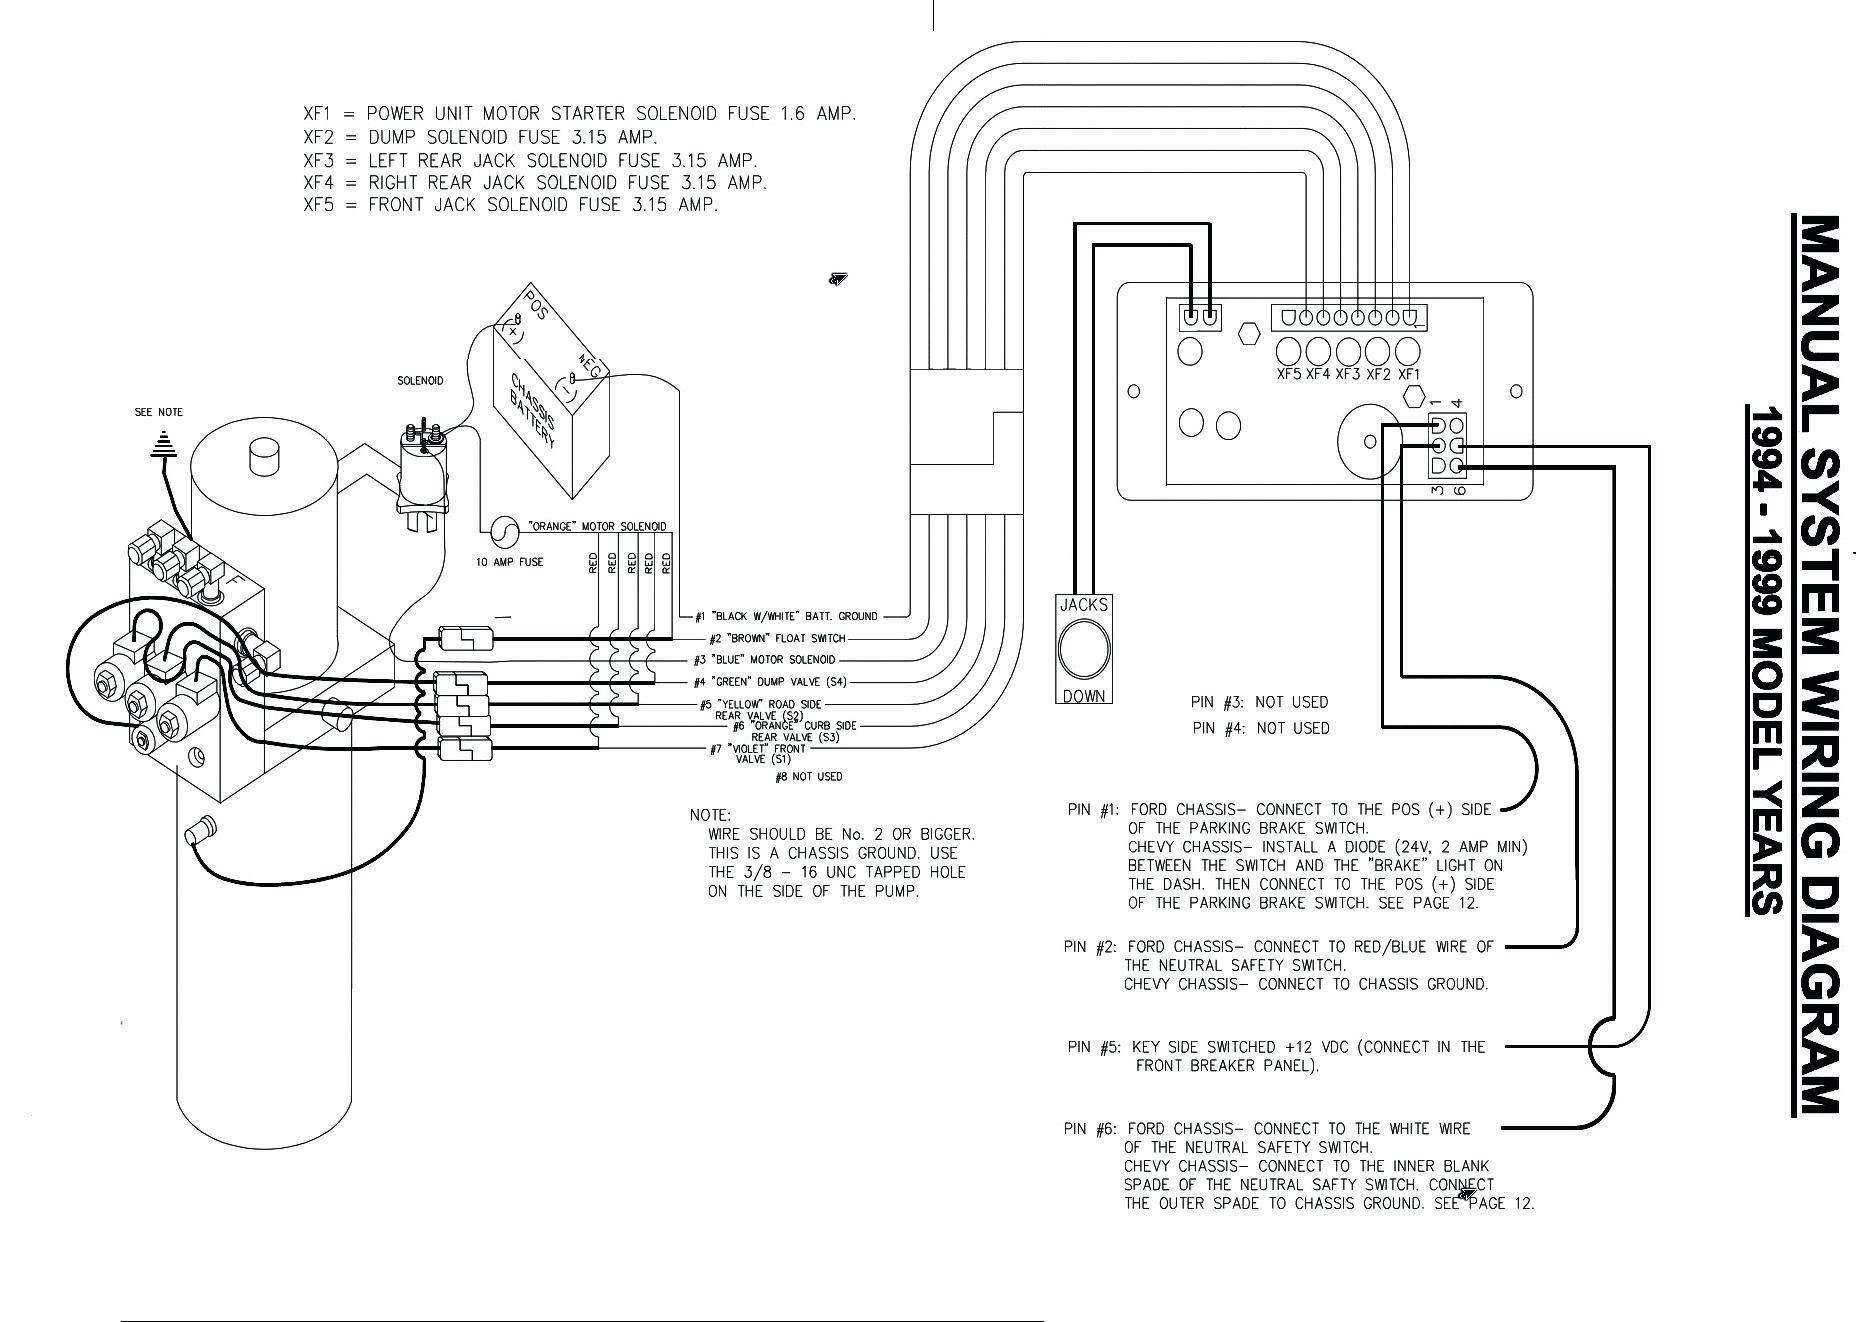 solenoid valve wiring connection ���������� ������������ 5